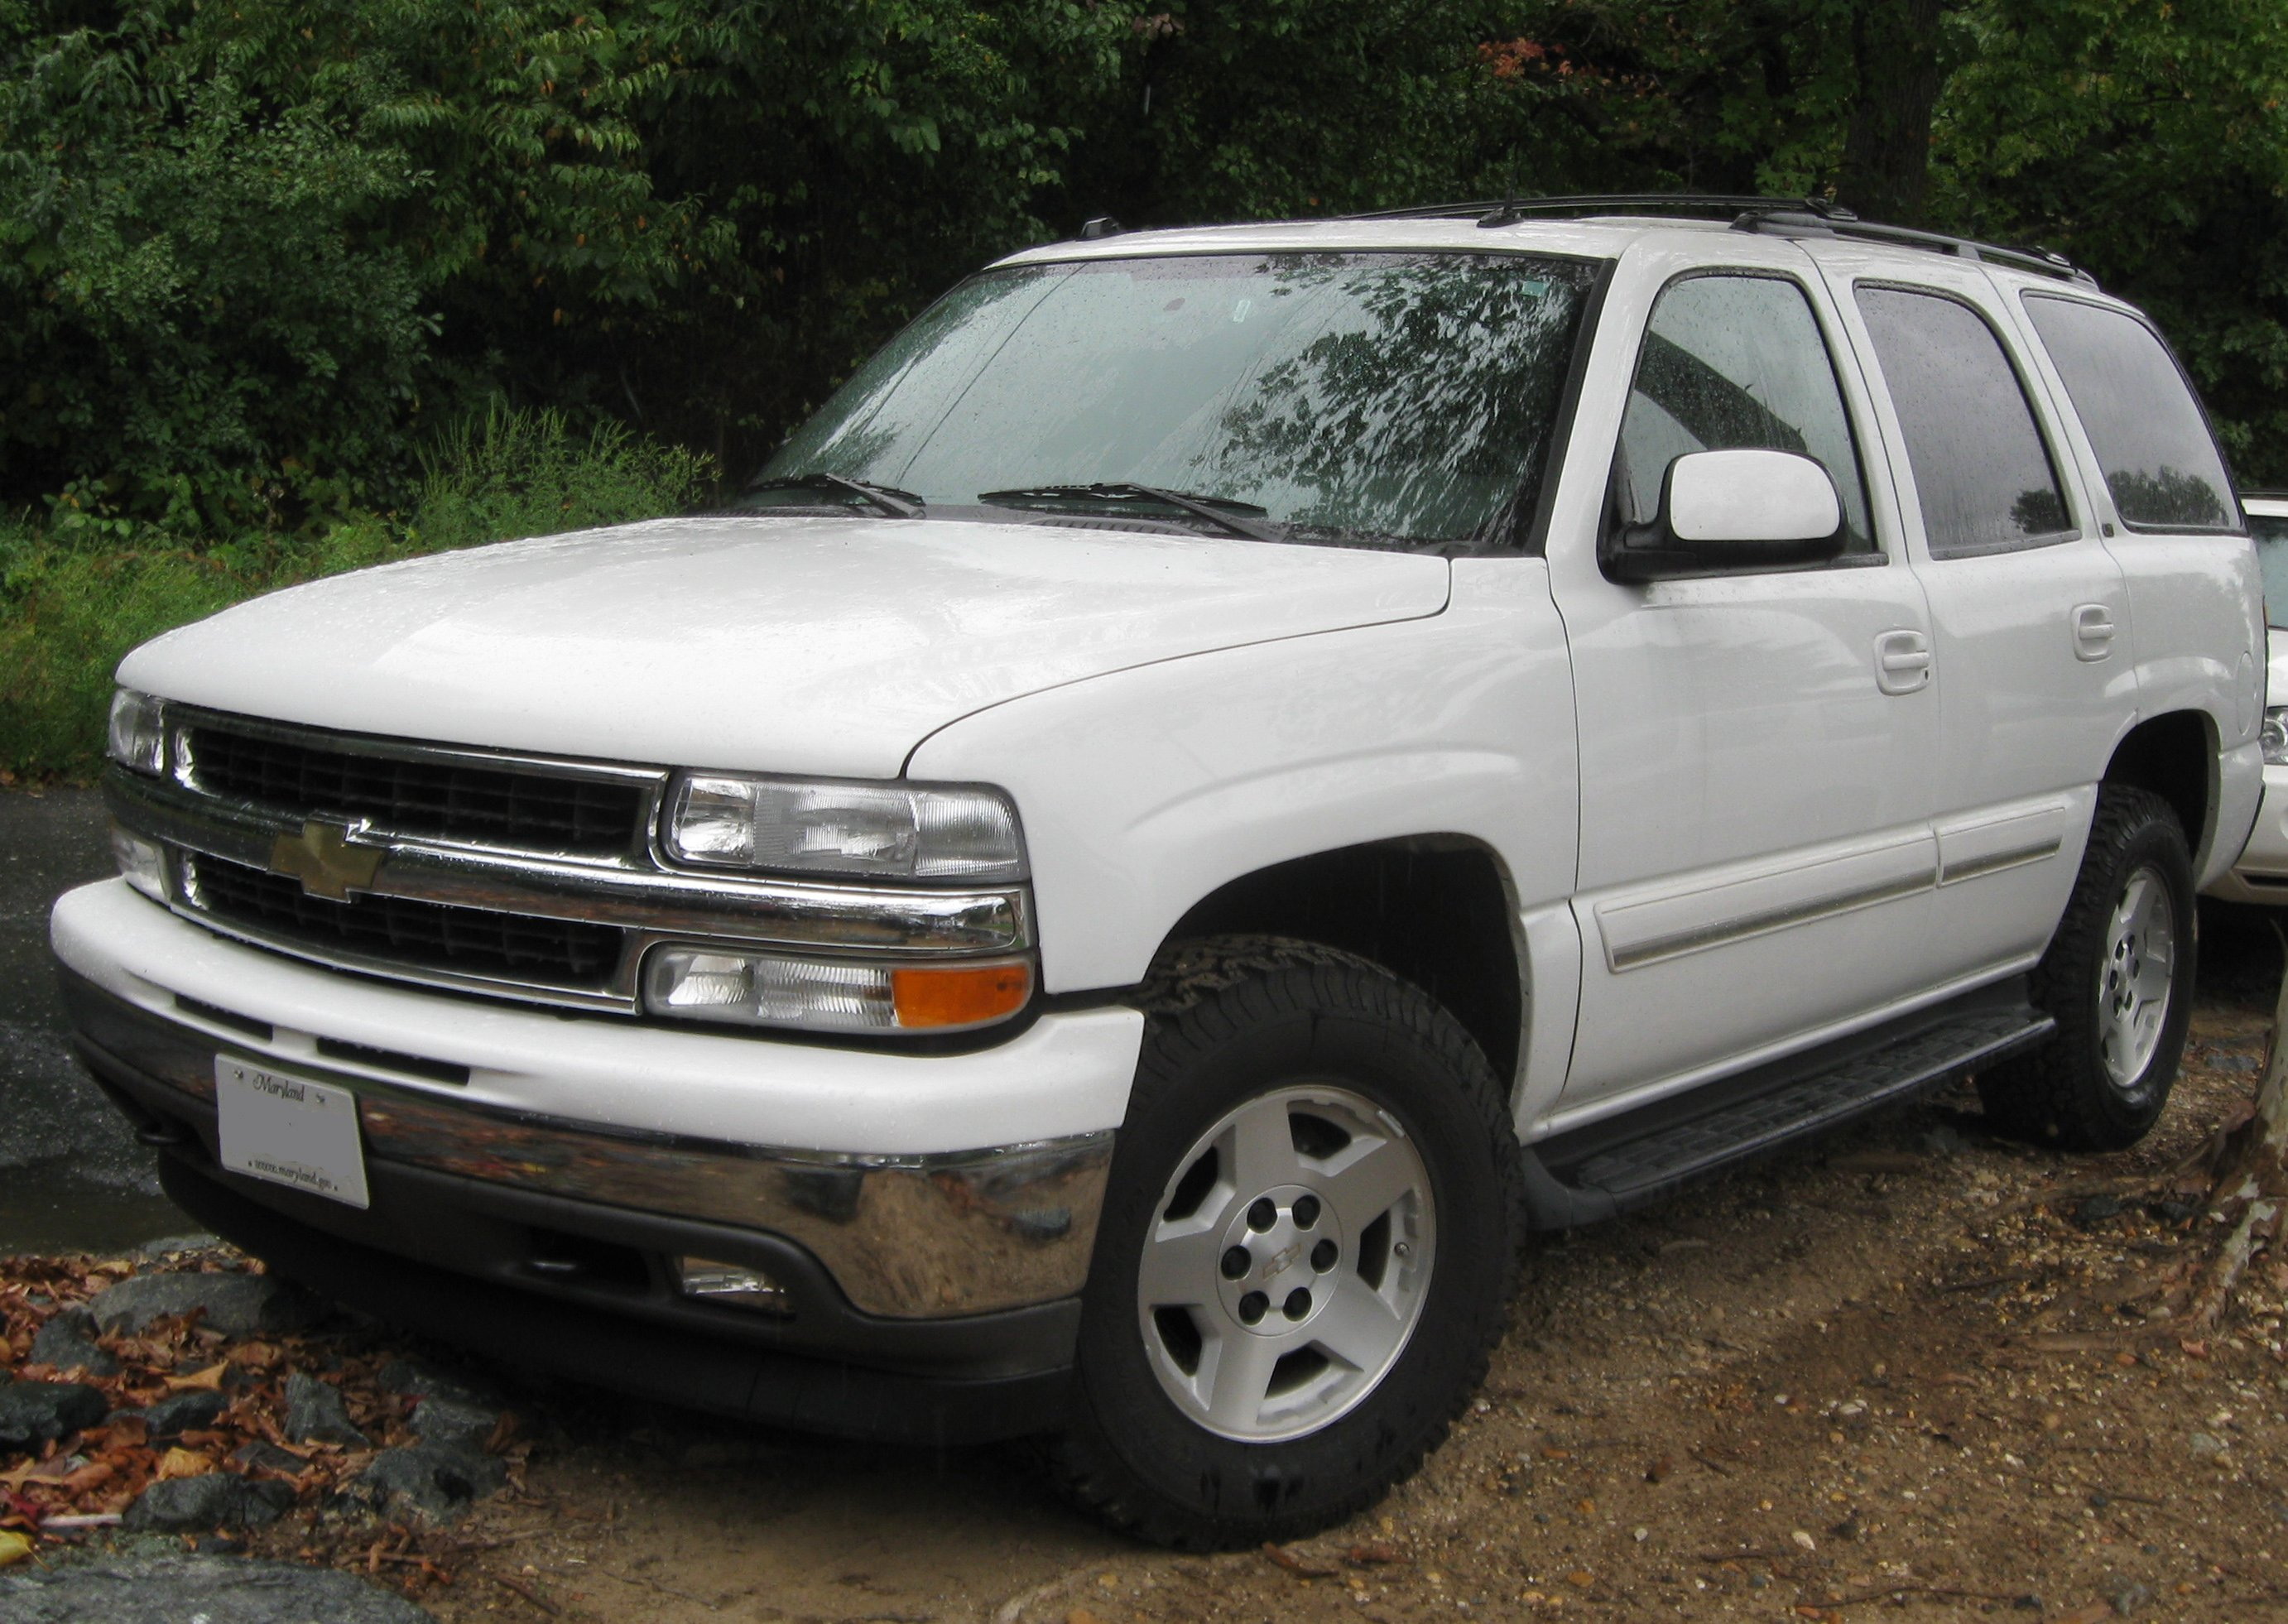 Pictures of chevrolet suburban gmt800 2002 1